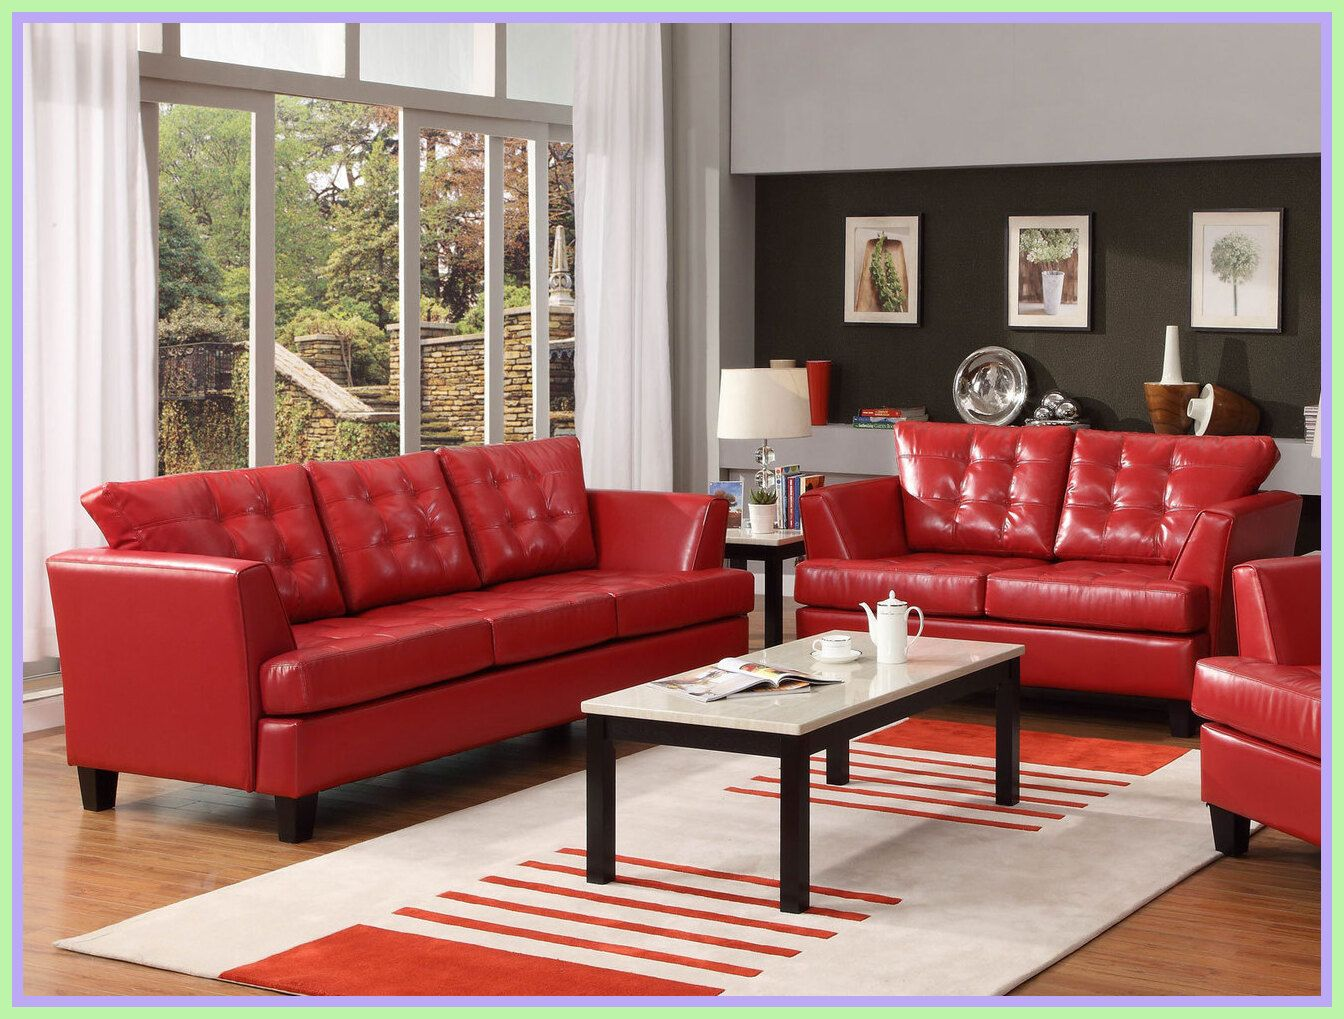 54 Reference Of Living Room Desgn Sofa In 2020 Living Room Sofa Design Living Room Red Living Room Sofa